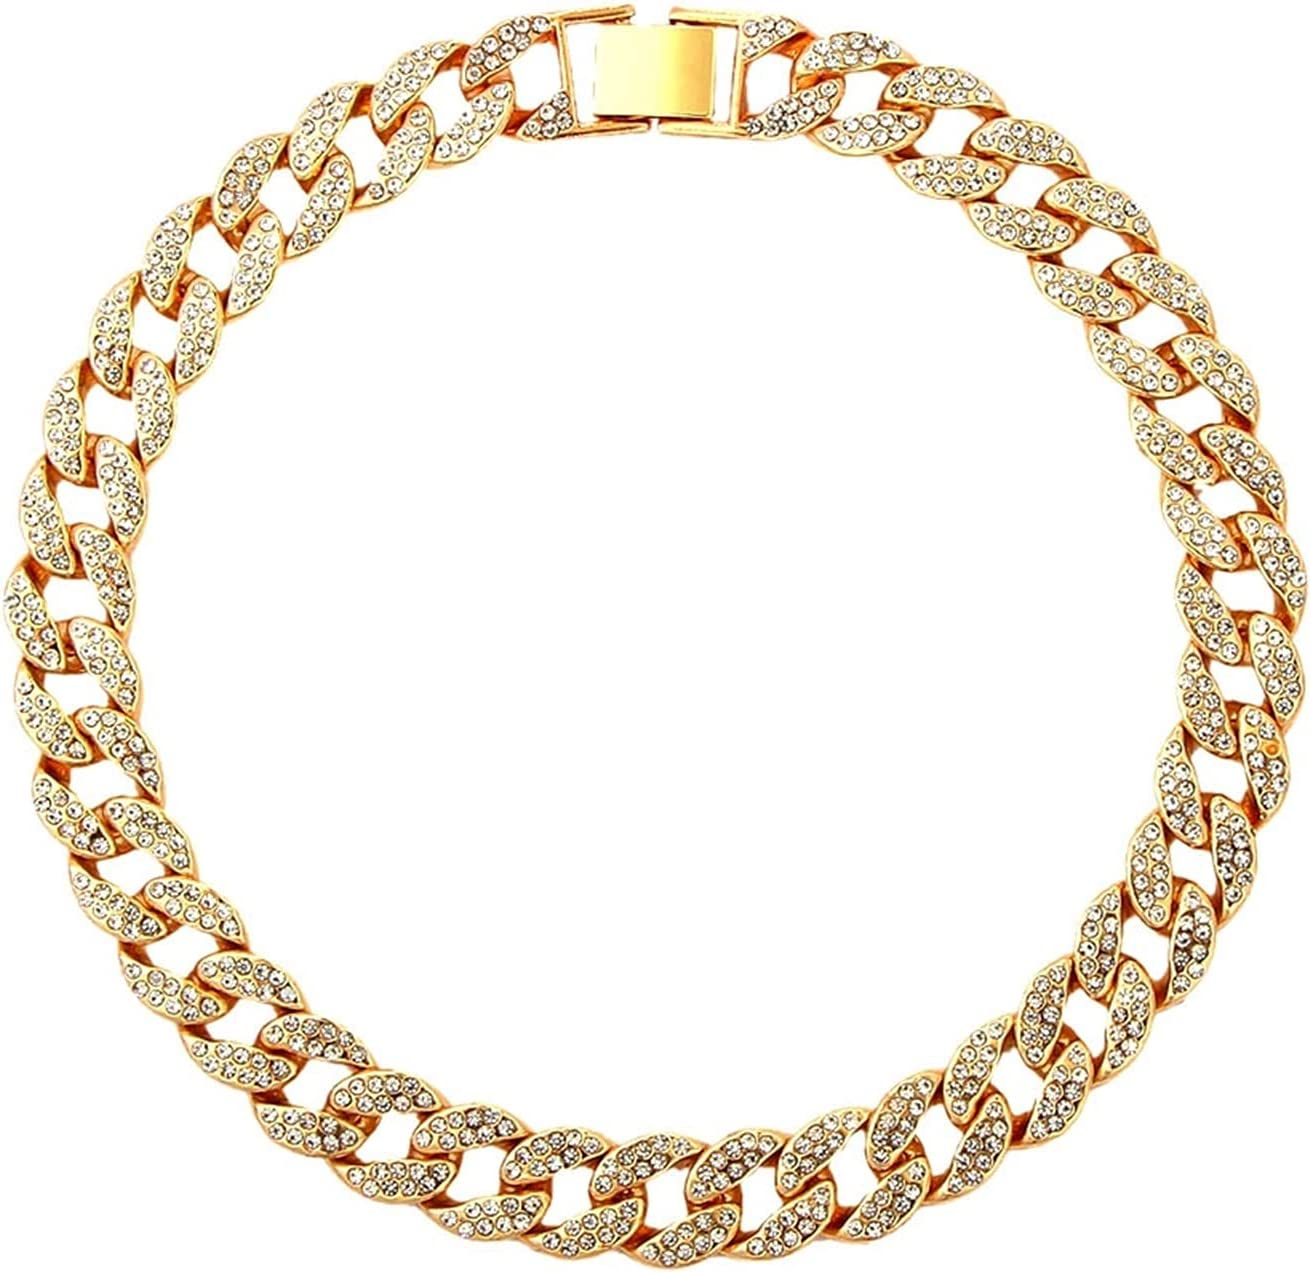 MJNYHGB Necklace 15mm Cuban Link Chains Necklace Fashion Hiphop Jewelry for Women Men Bling Iced Out Full Rhinestone Rapper Necklaces Collar Women Necklace (Metal Color : A047003GD)